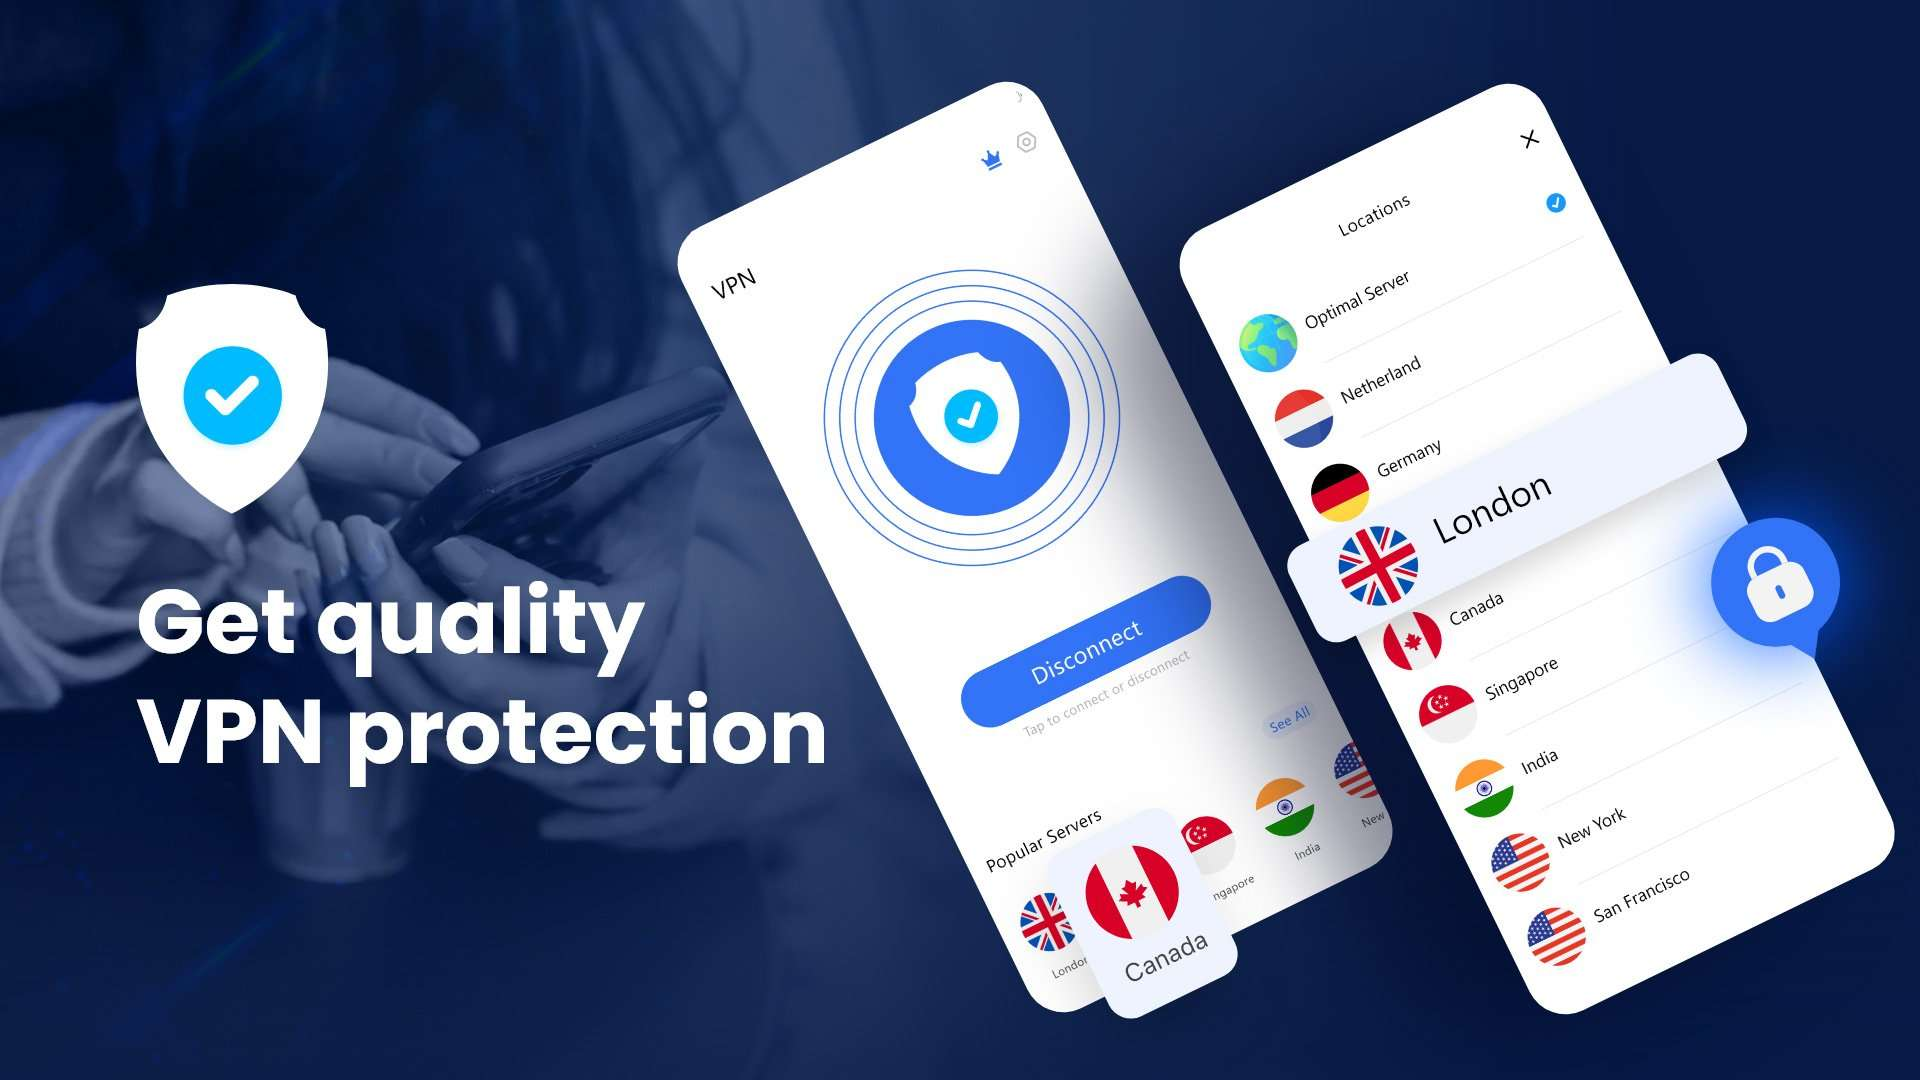 Get a vpn for quality protection